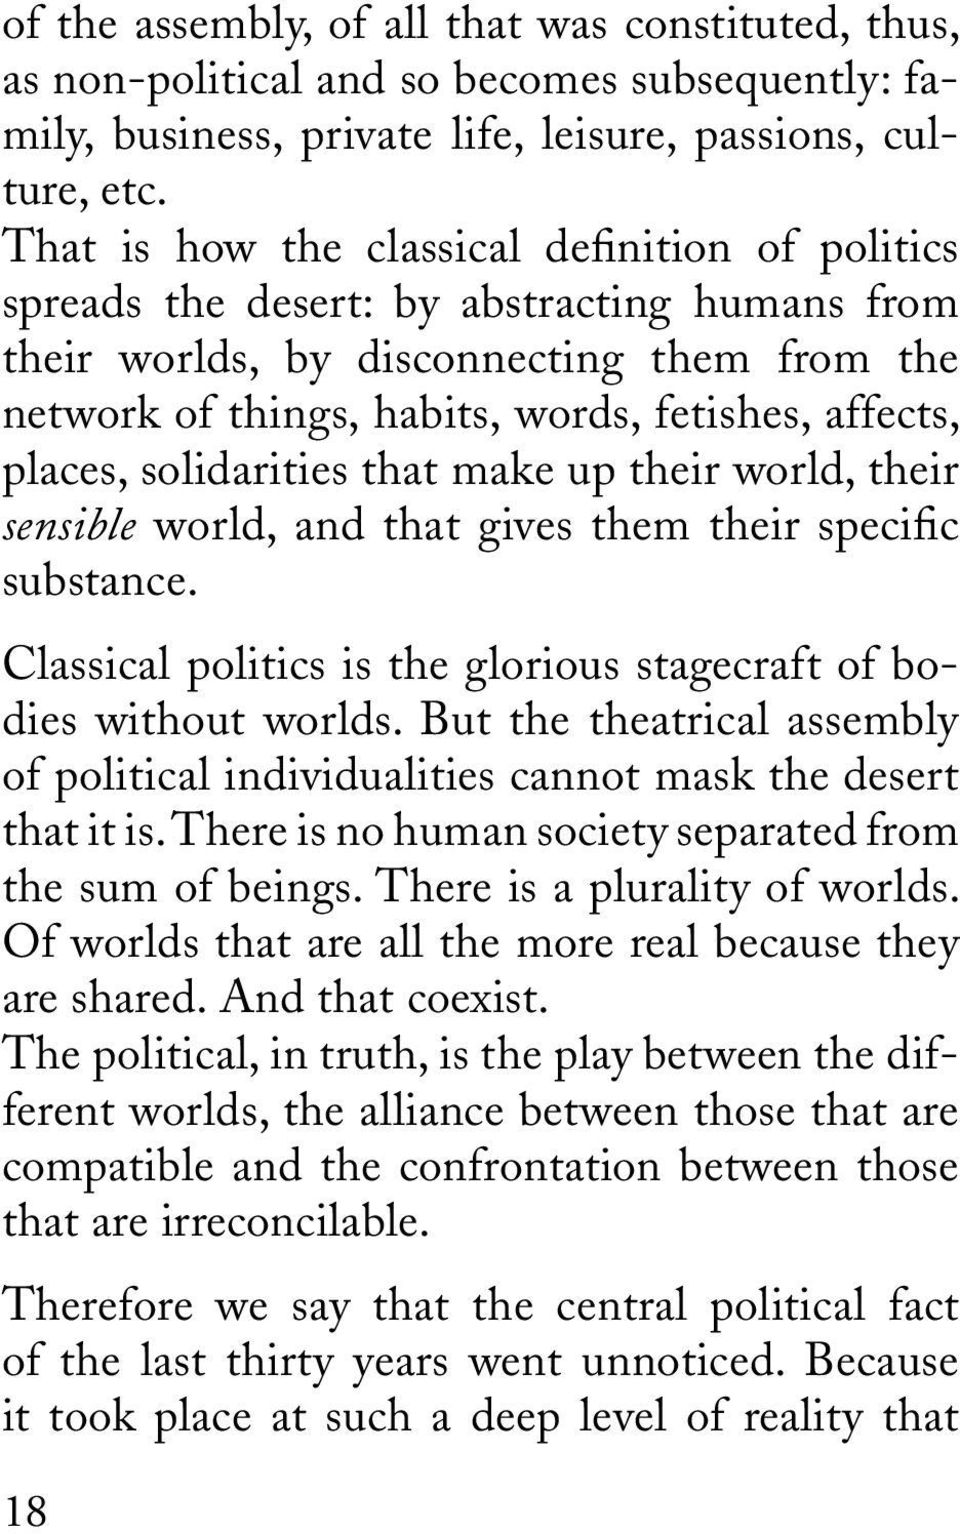 places, solidarities that make up their world, their sensible world, and that gives them their specific substance. Classical politics is the glorious stagecraft of bodies without worlds.